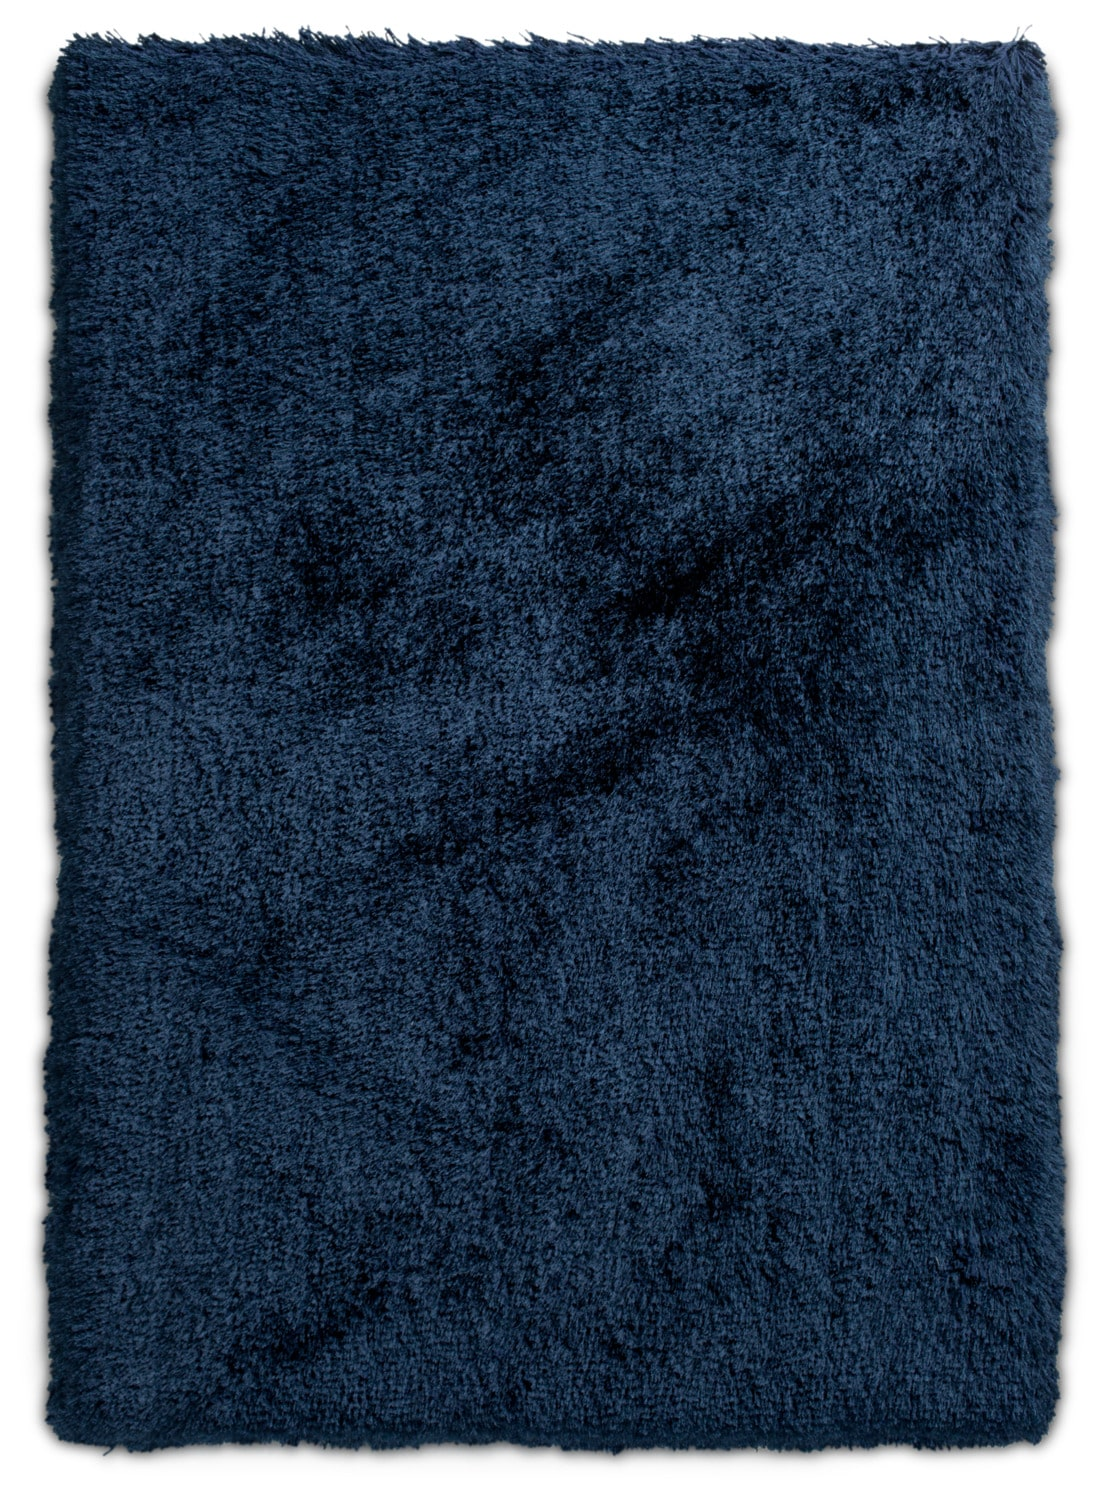 Rugs - Ultra Shag Area Rug - Navy